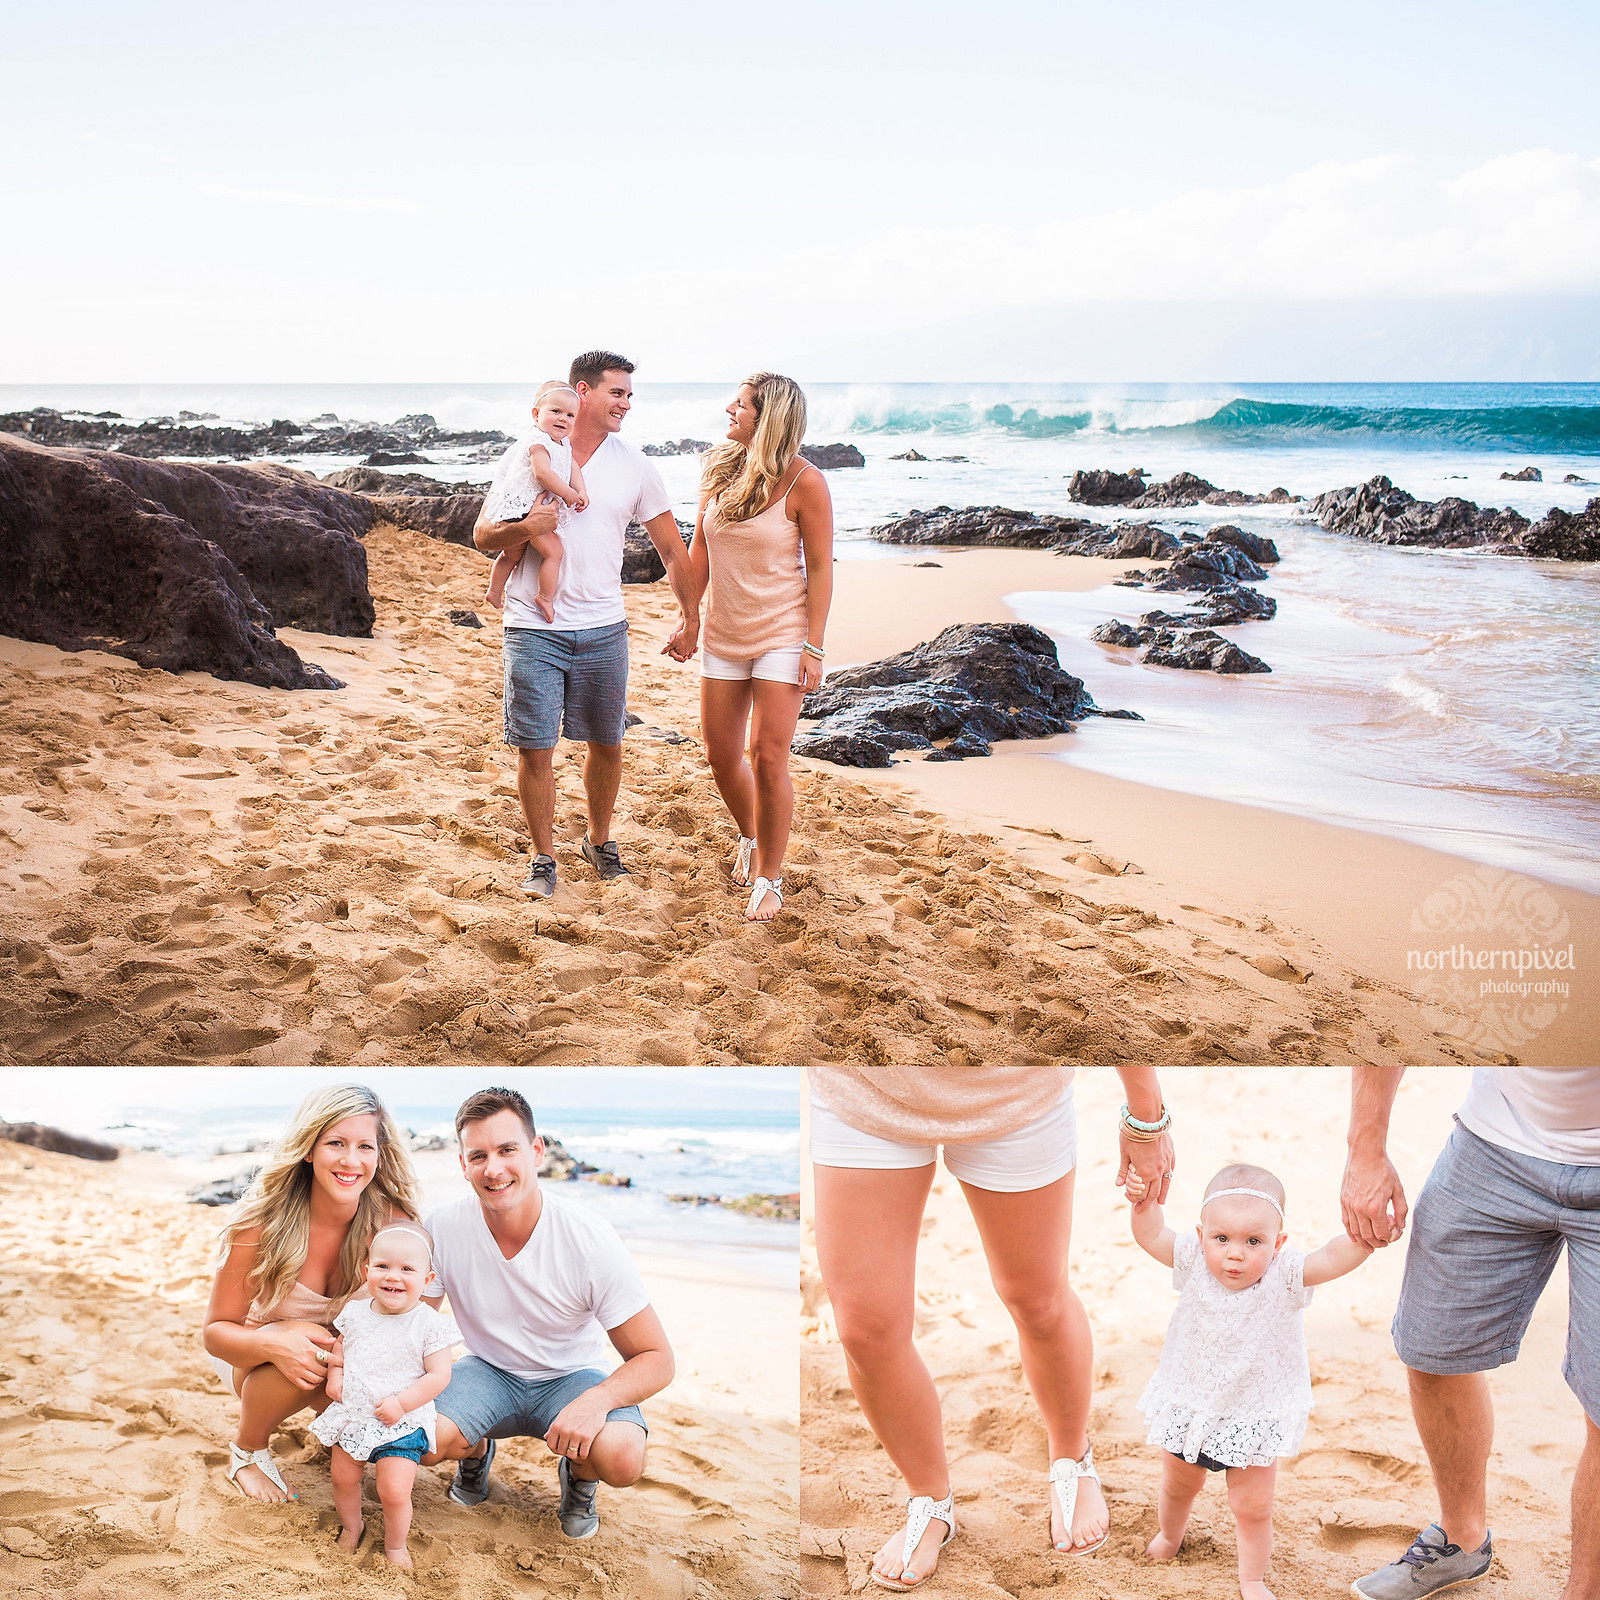 Family Photos at the Beach - Maui